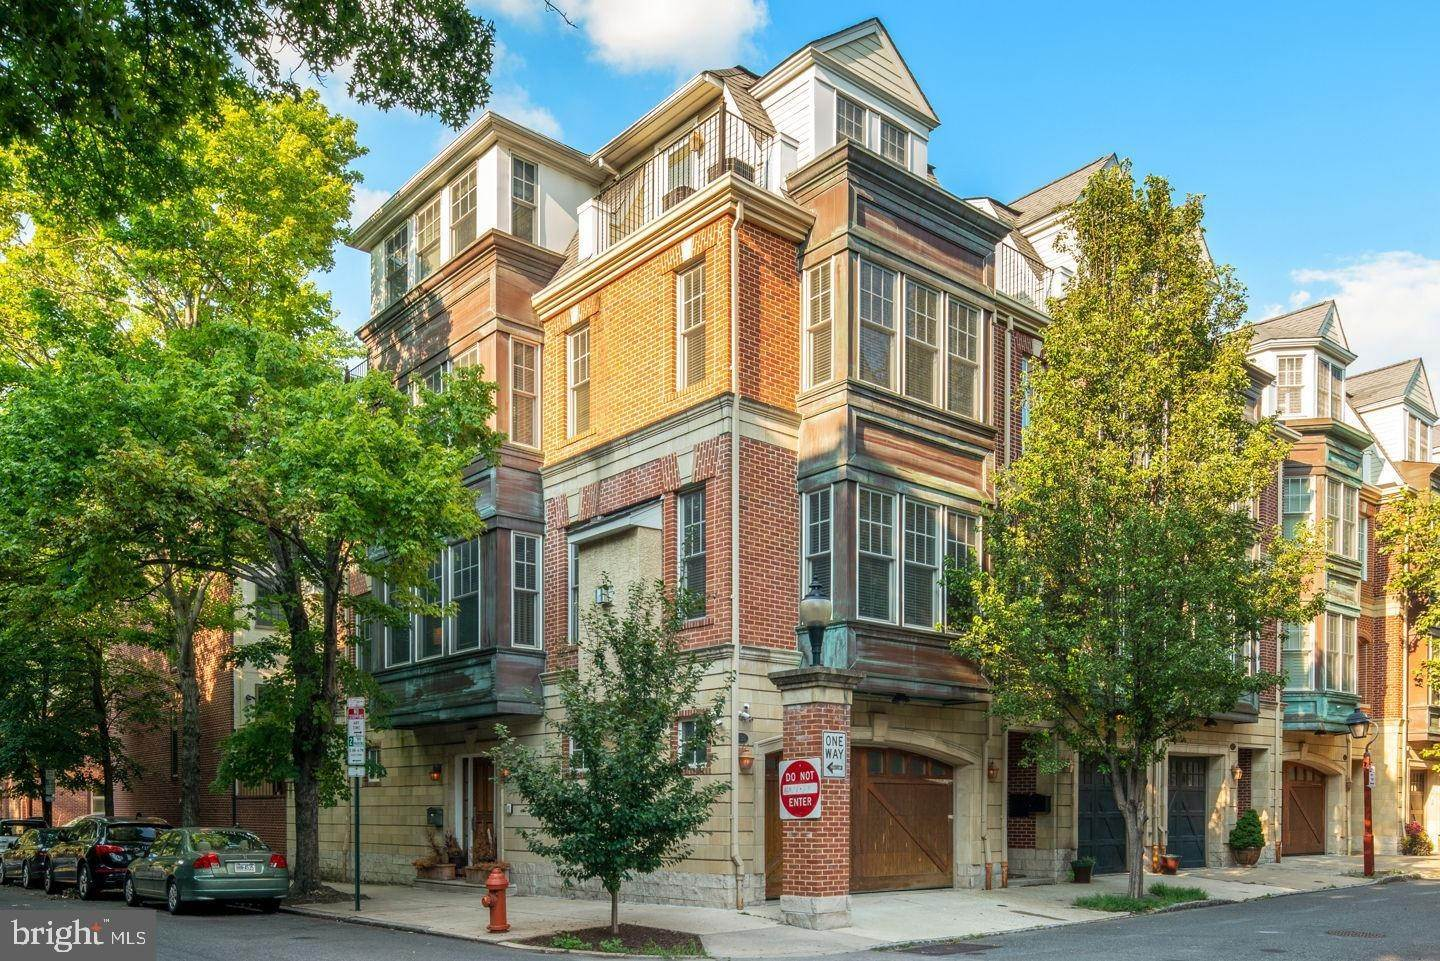 Residential for Sale at 235 GASKILL Street Philadelphia, Pennsylvania 19147 United States